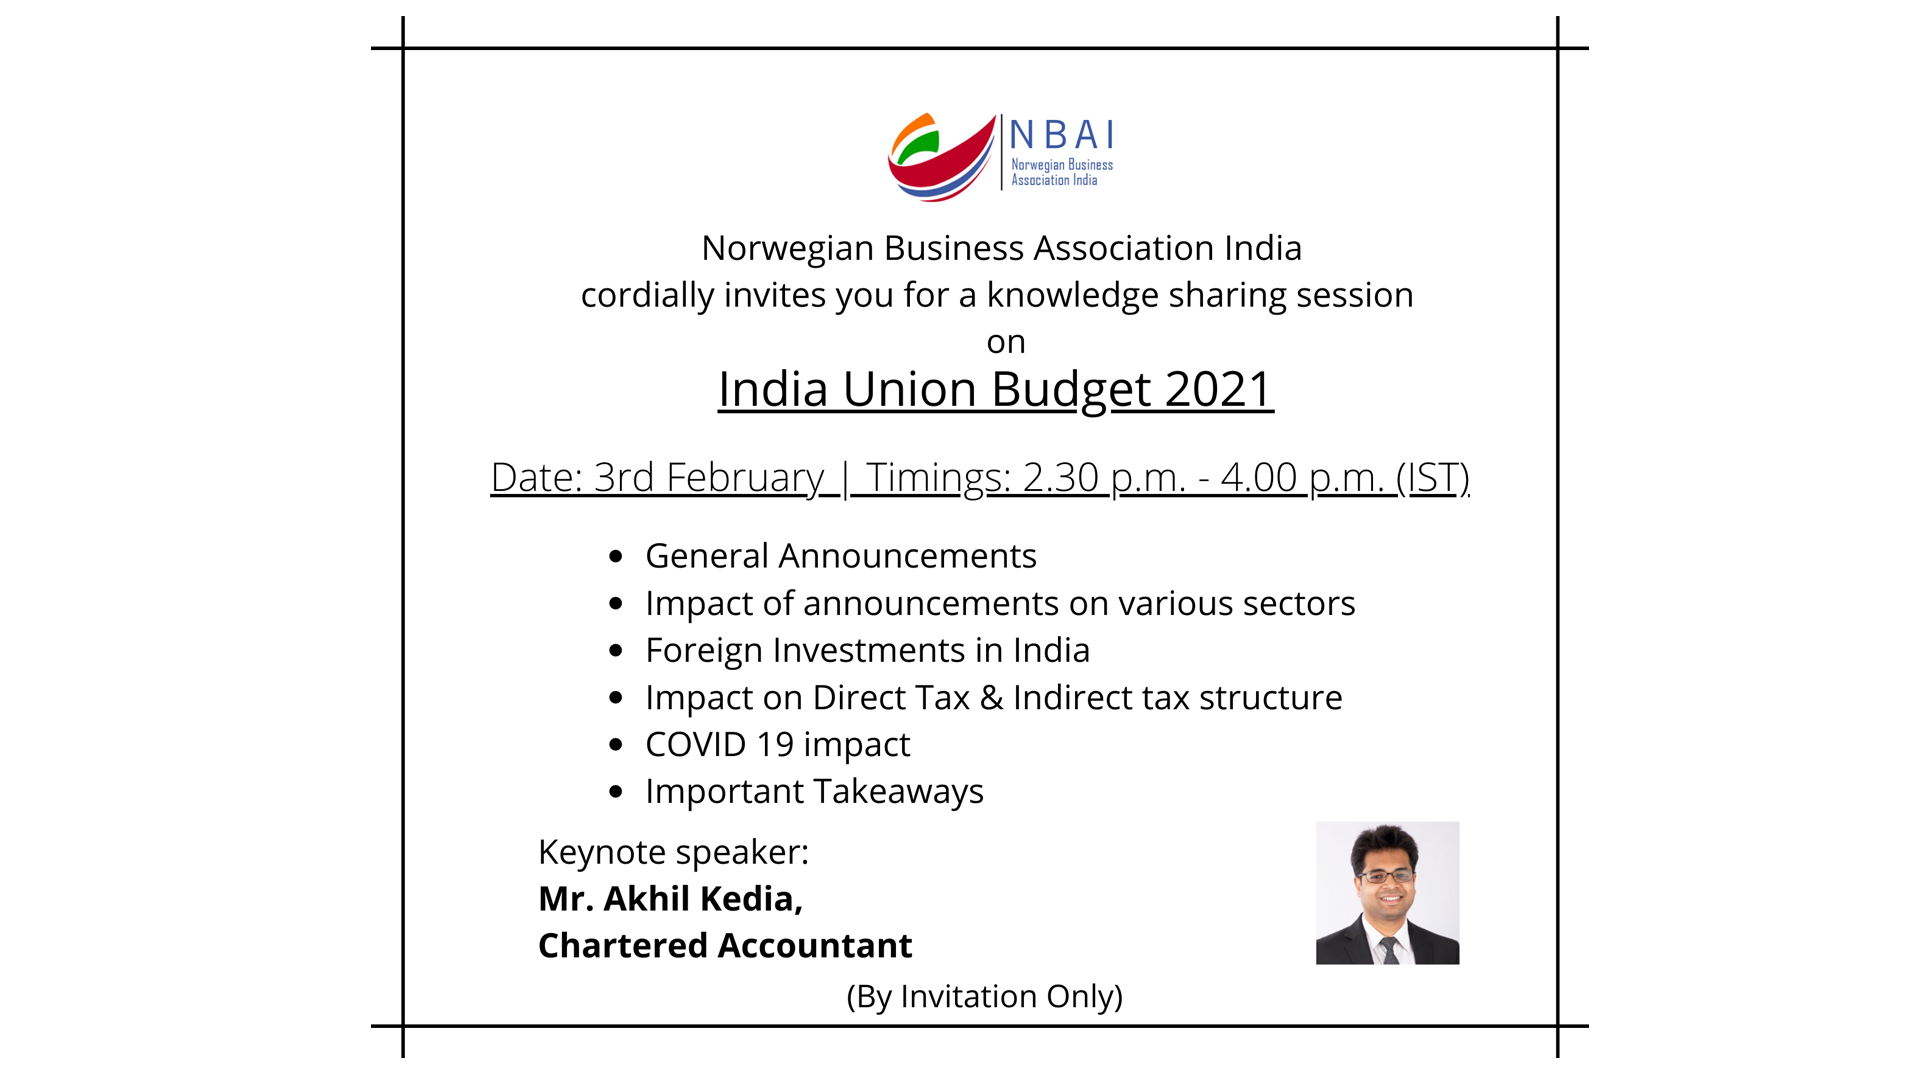 WEBINAR ON INDIAN UNION BUDGET 2021 BY NBAI INDIA